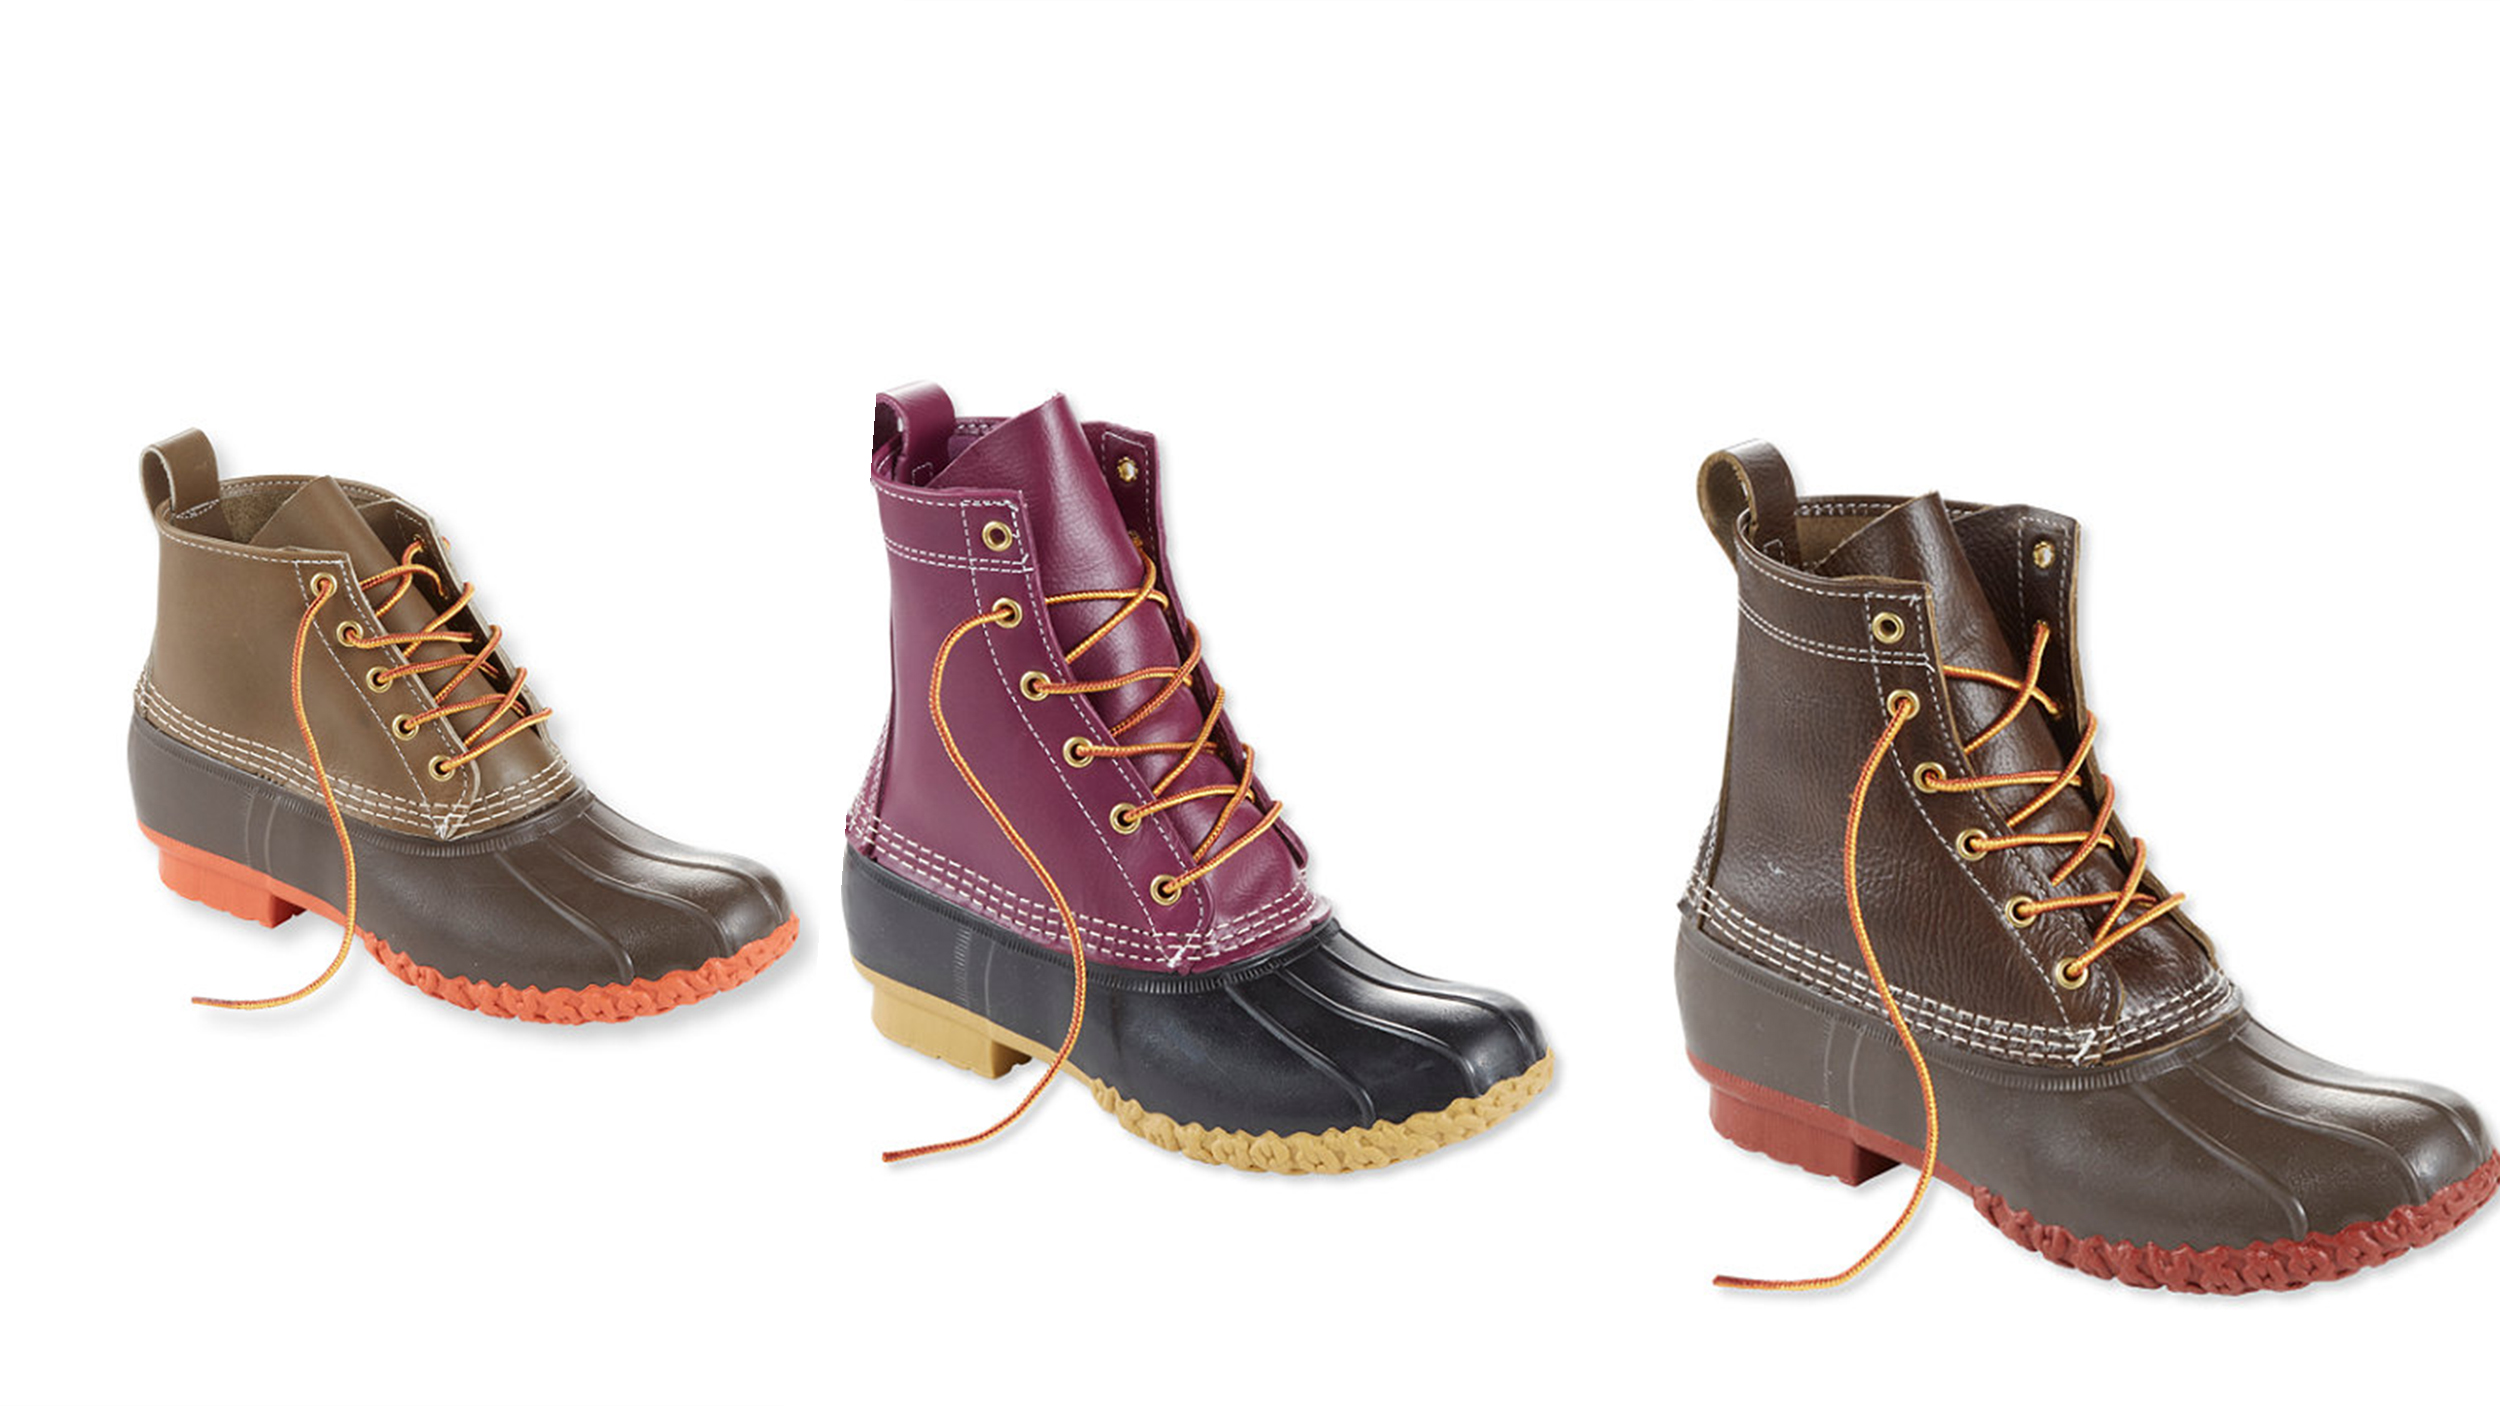 Ll Bean39s Duck Boots Now Come In New Colors And Styles